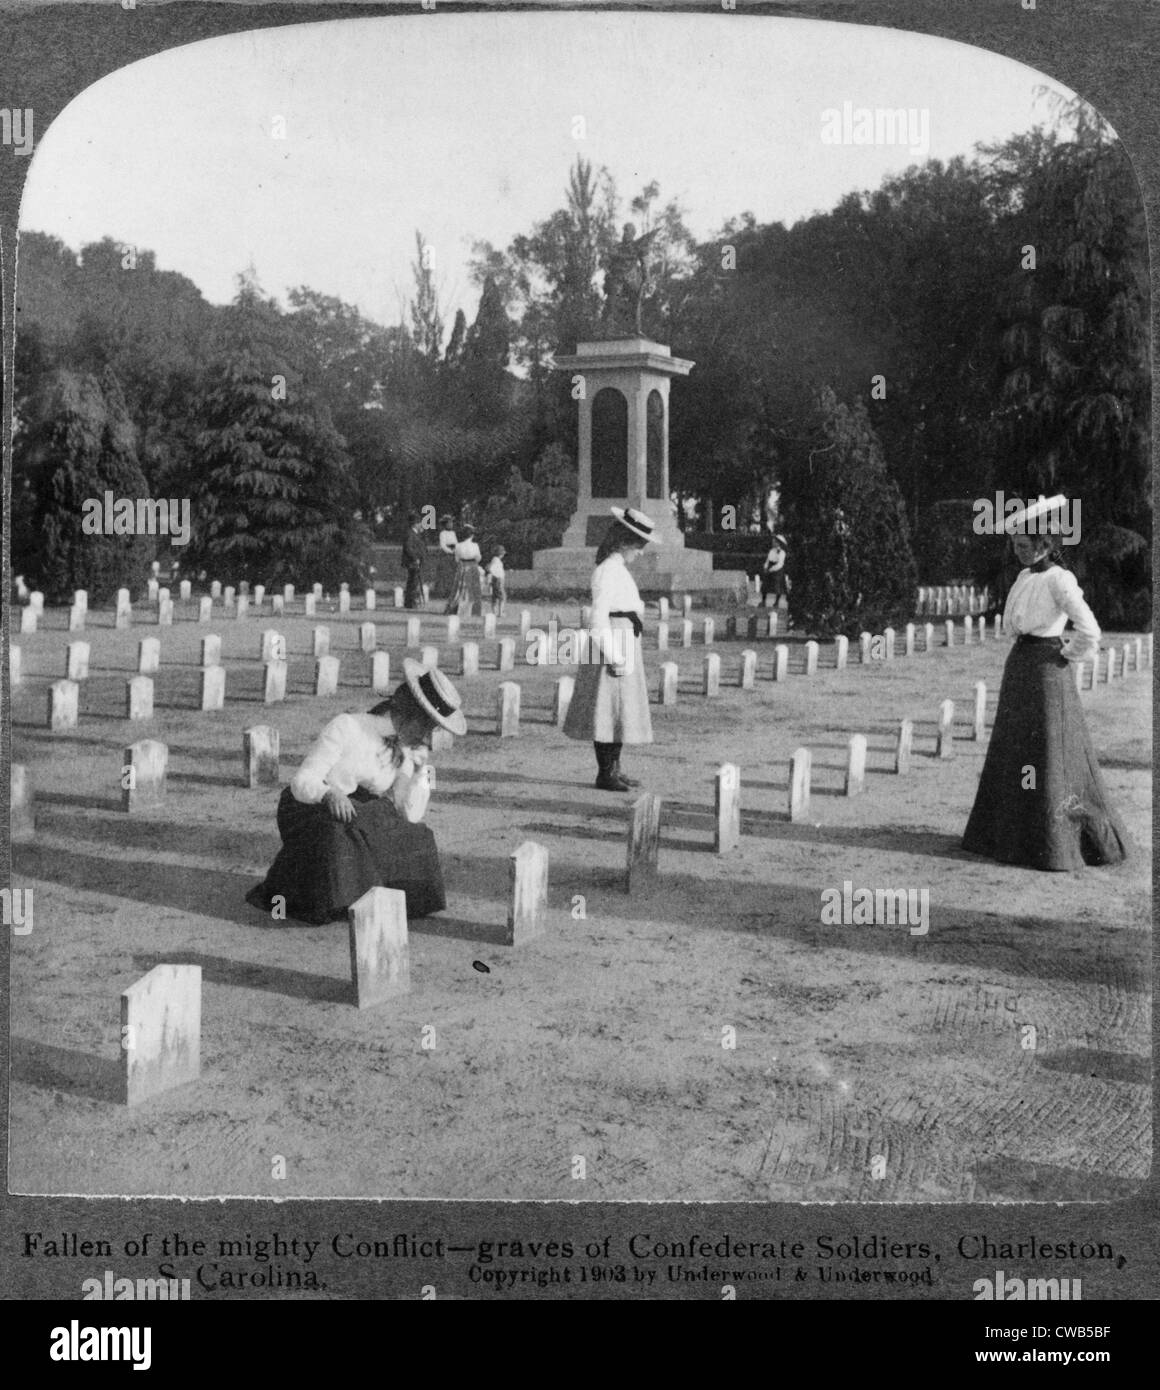 The Civil War, fallen of the mighty conflict, graves of Confederate soldiers, Charleston, South Carolina, photograph - Stock Image